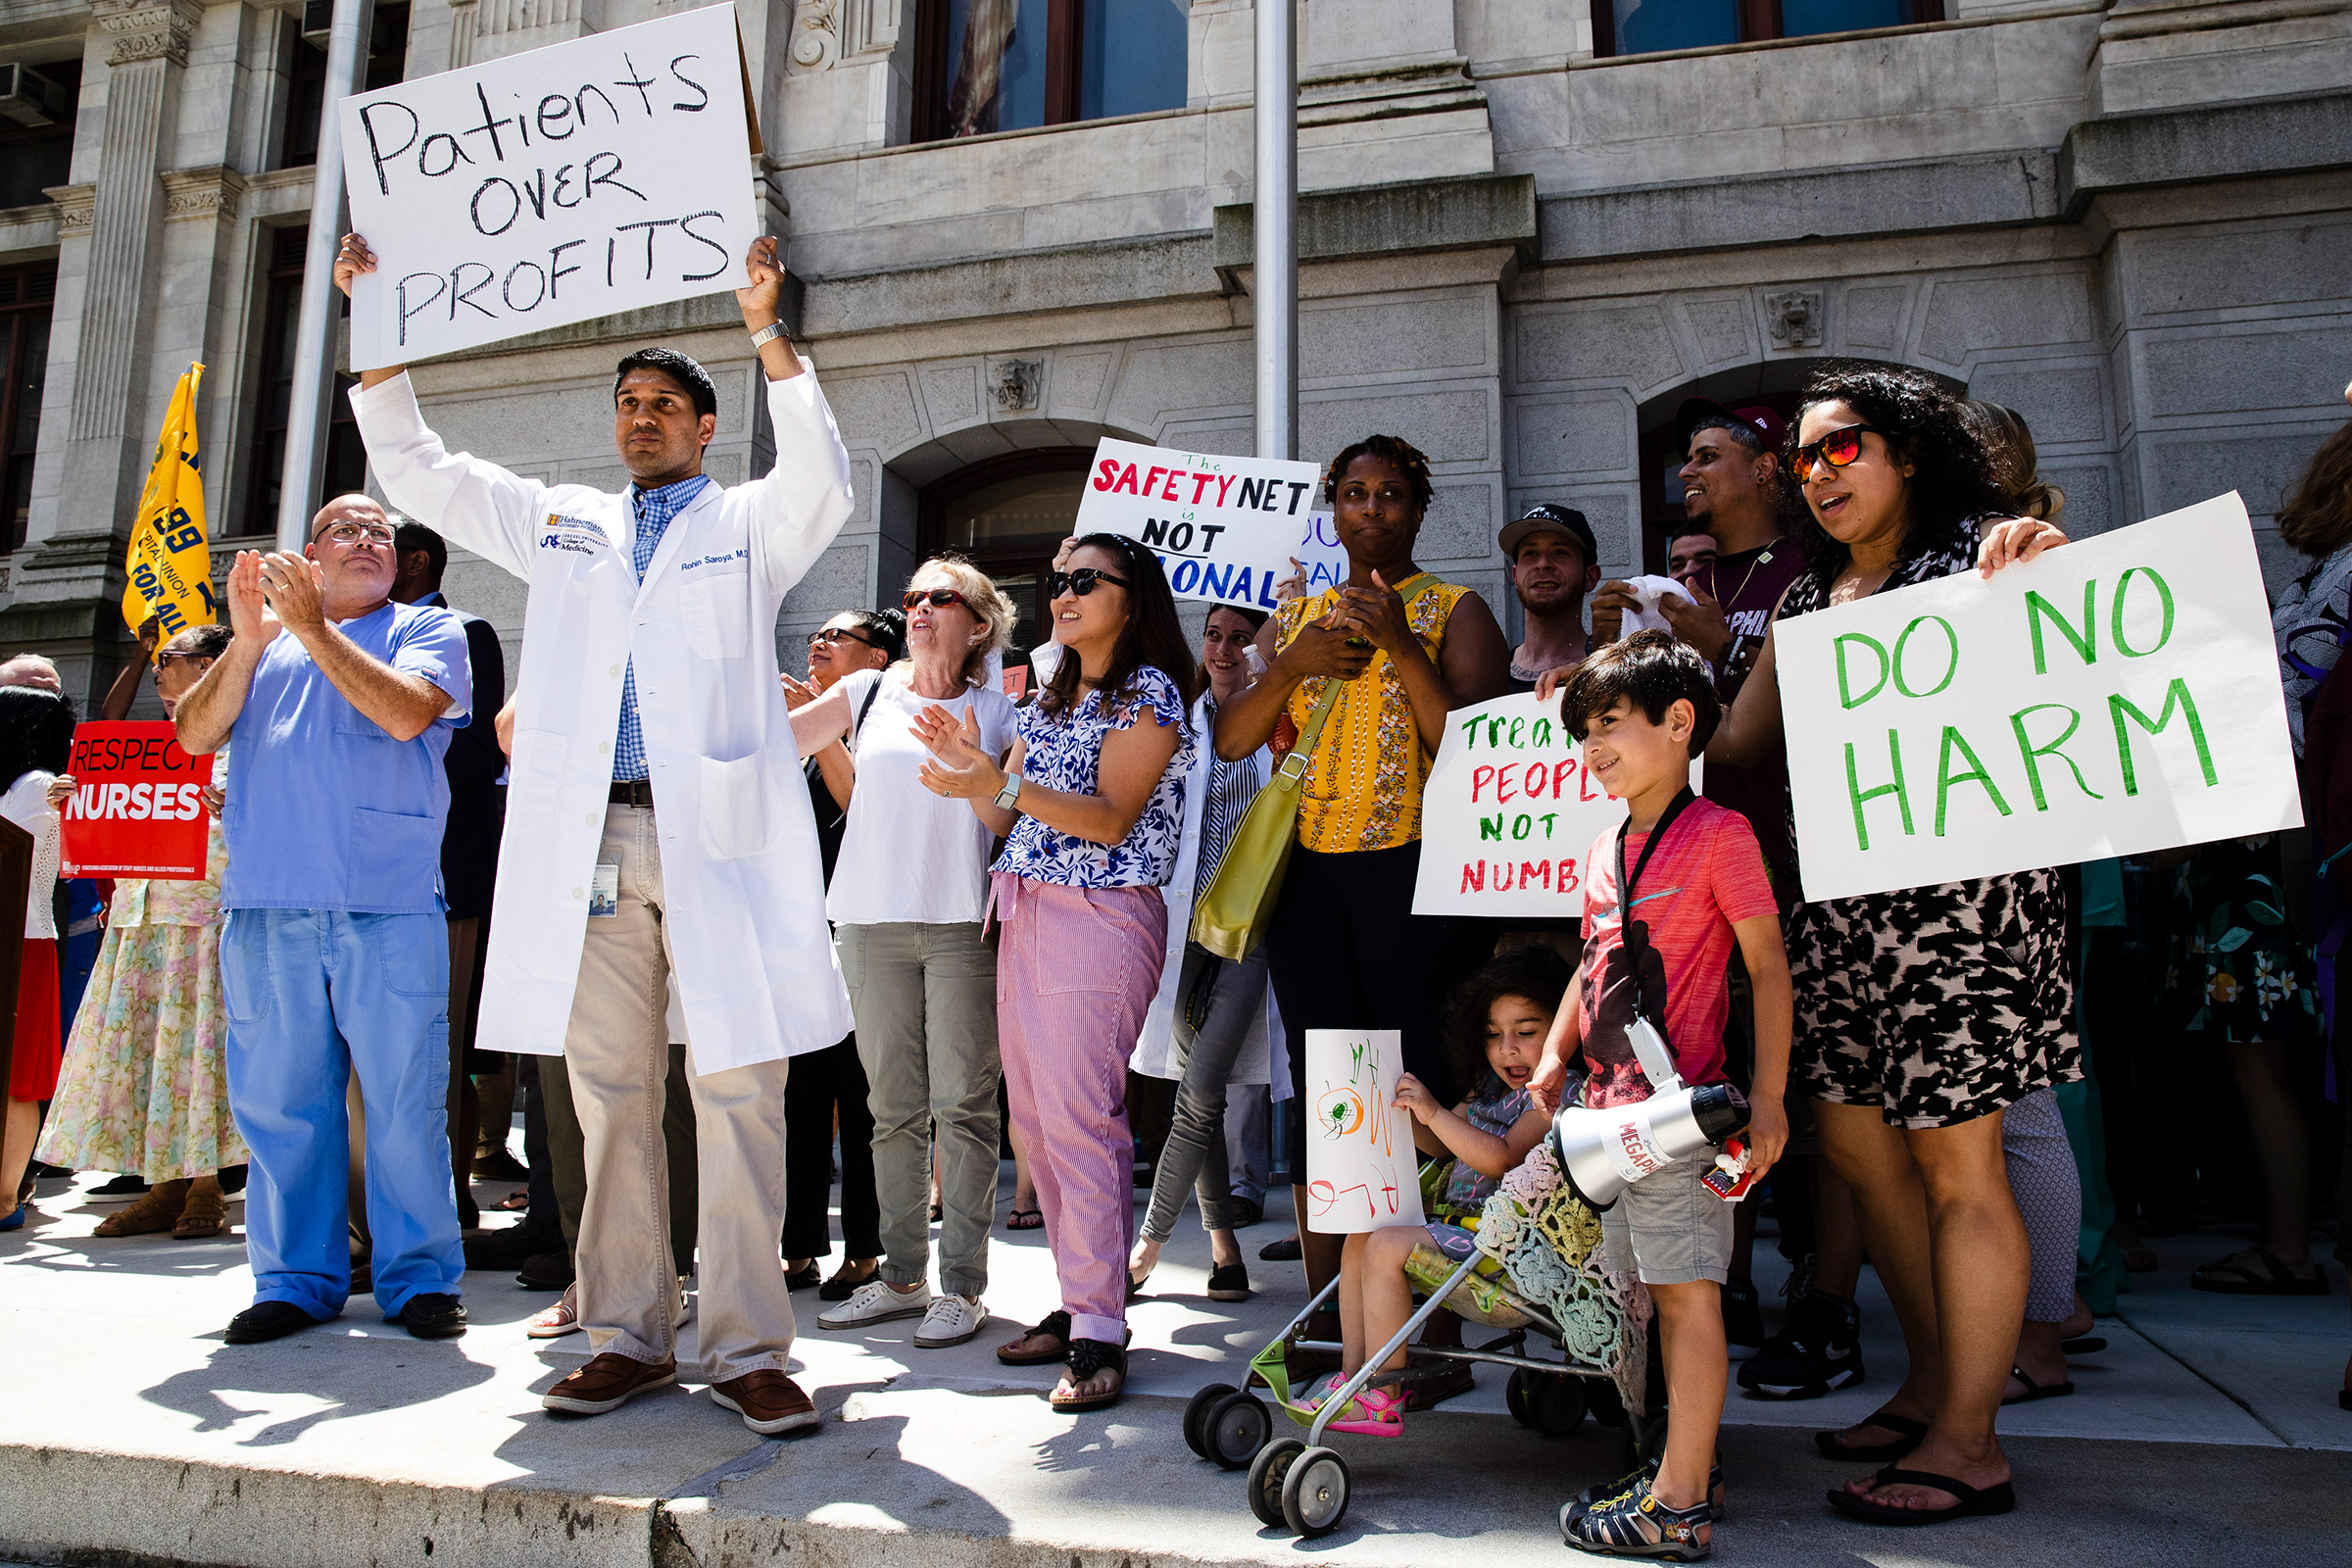 Protesters demonstrate against the planned closure of Hahnemann University Hospital, at City Hall in Philadelphia, June 27, 2019